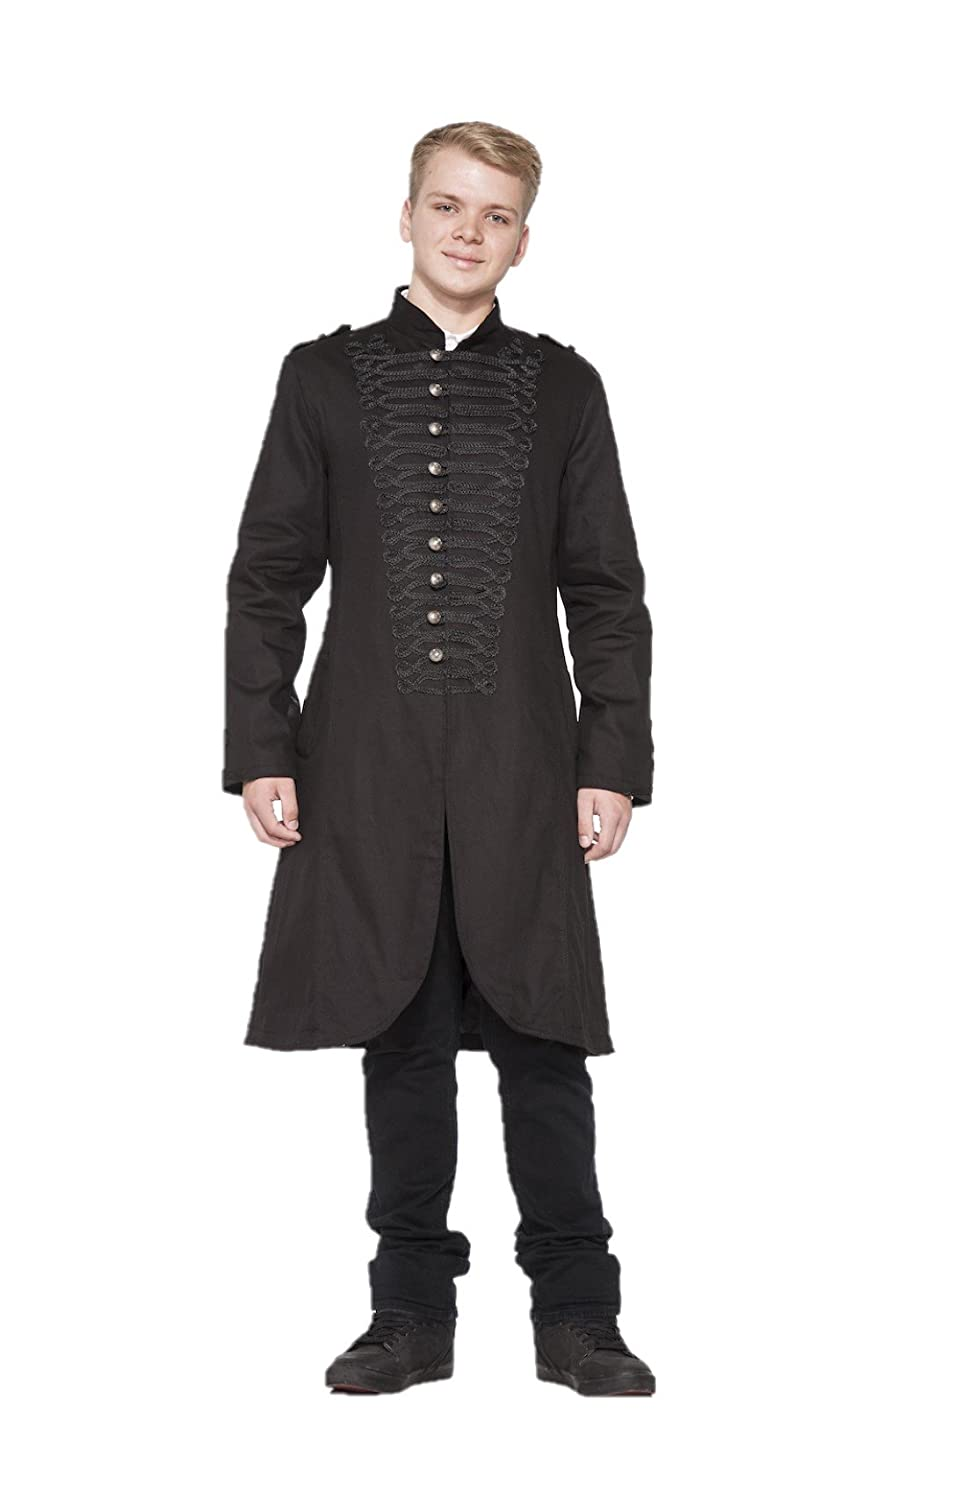 Men's Steampunk Jackets, Coats & Suits Hearts & Roses Military Coat (Shipped from The US and US Sizes) $98.88 AT vintagedancer.com